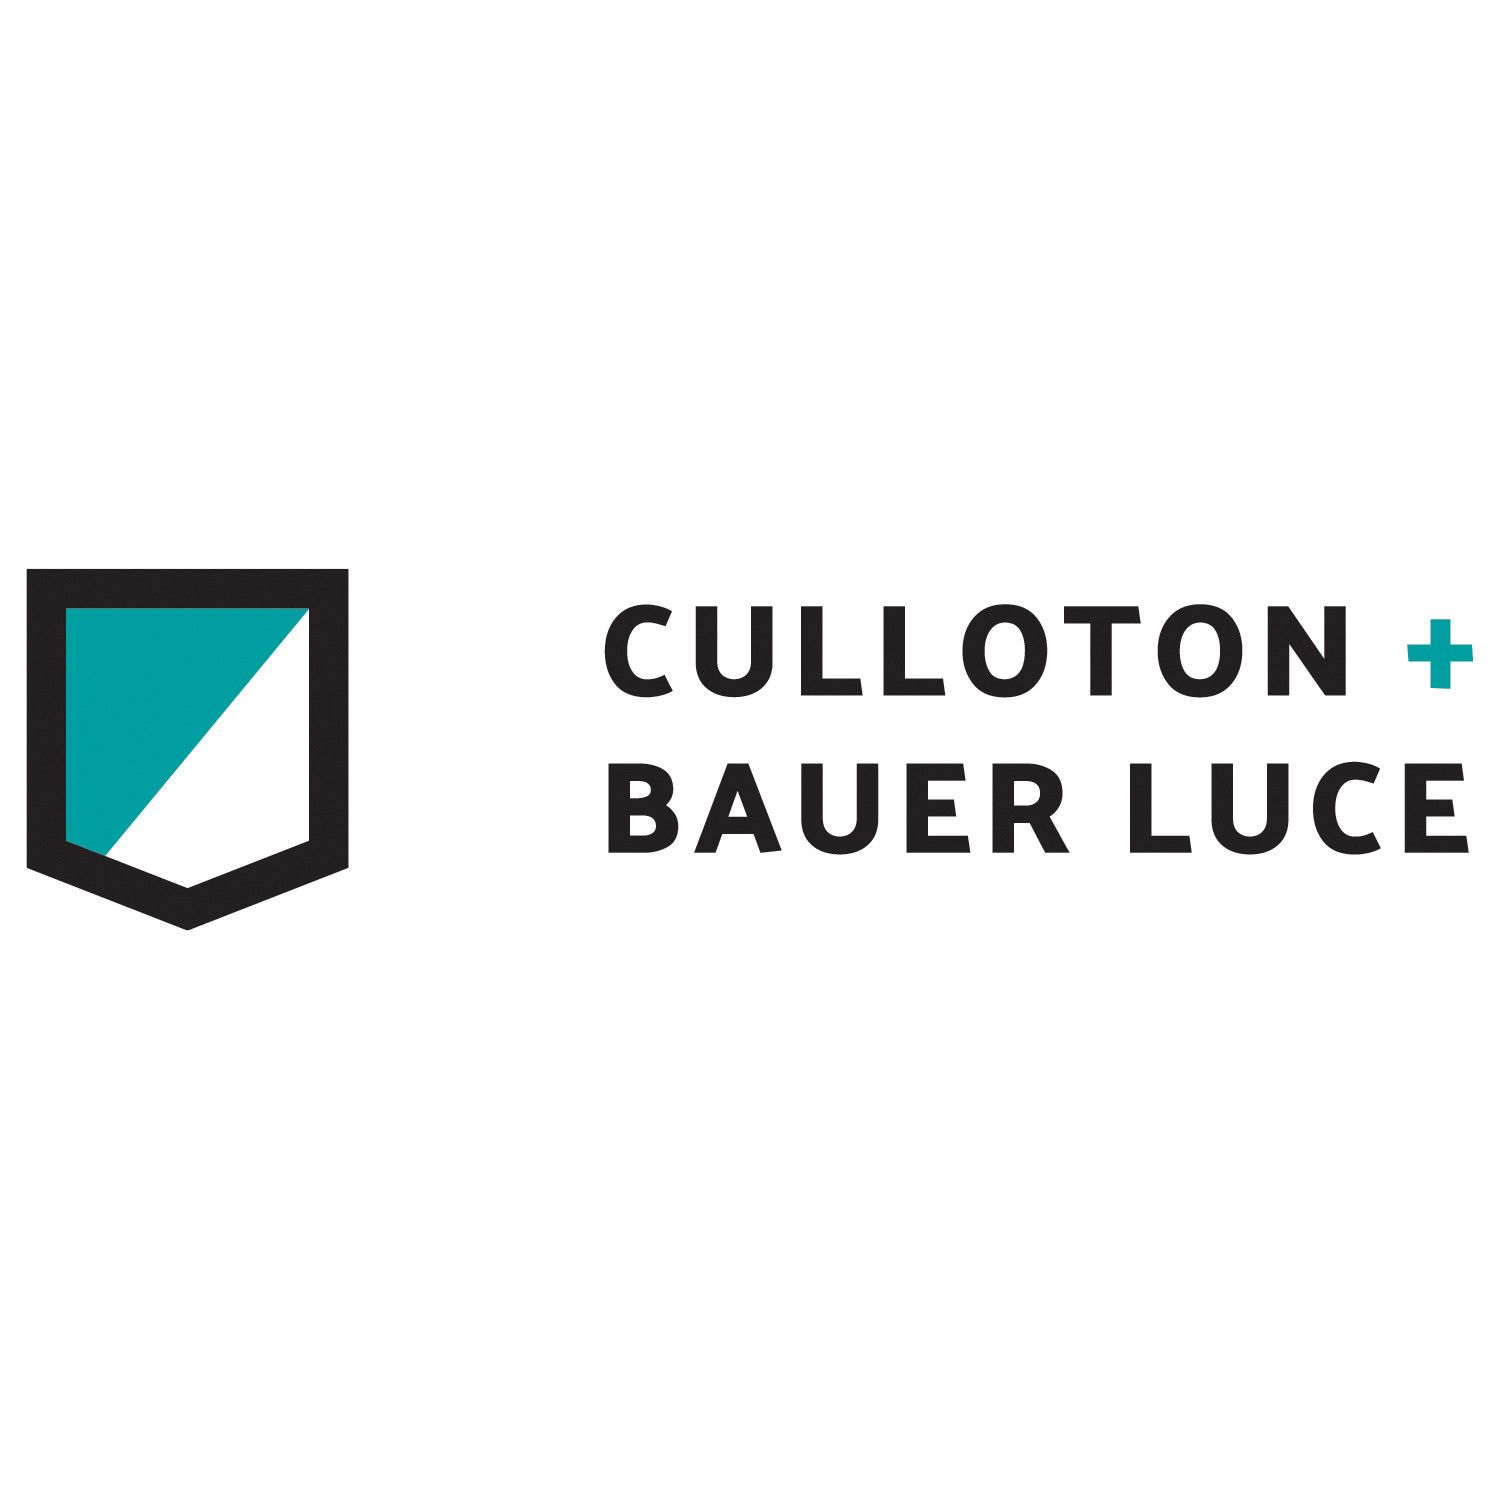 Culloton + Bauer Luce